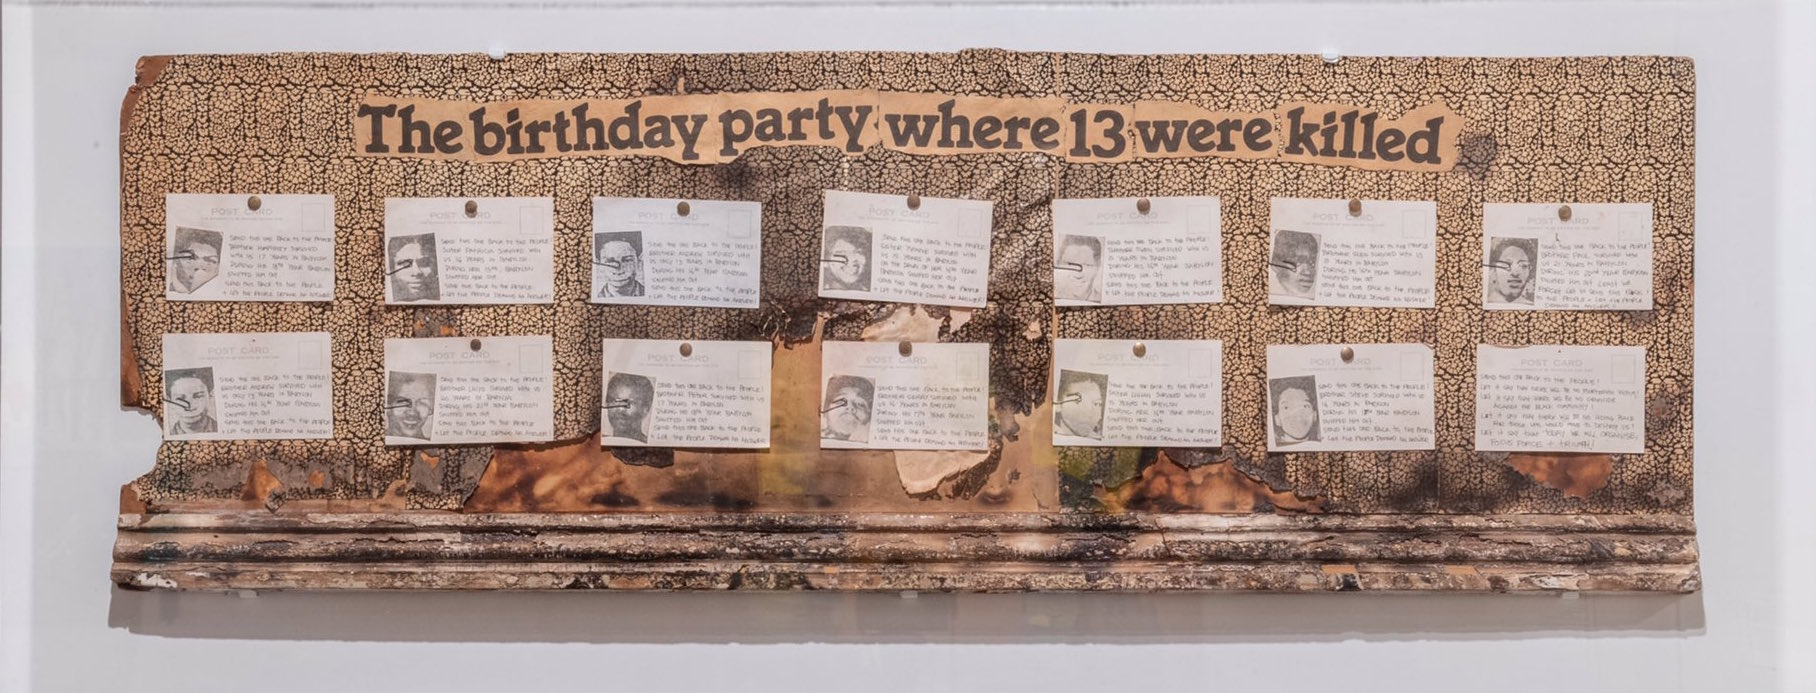 documentation showing photos of 13 young people under the heading 'the birthday party where 13 were killed' against a smoke damaged replica wall and skirting board